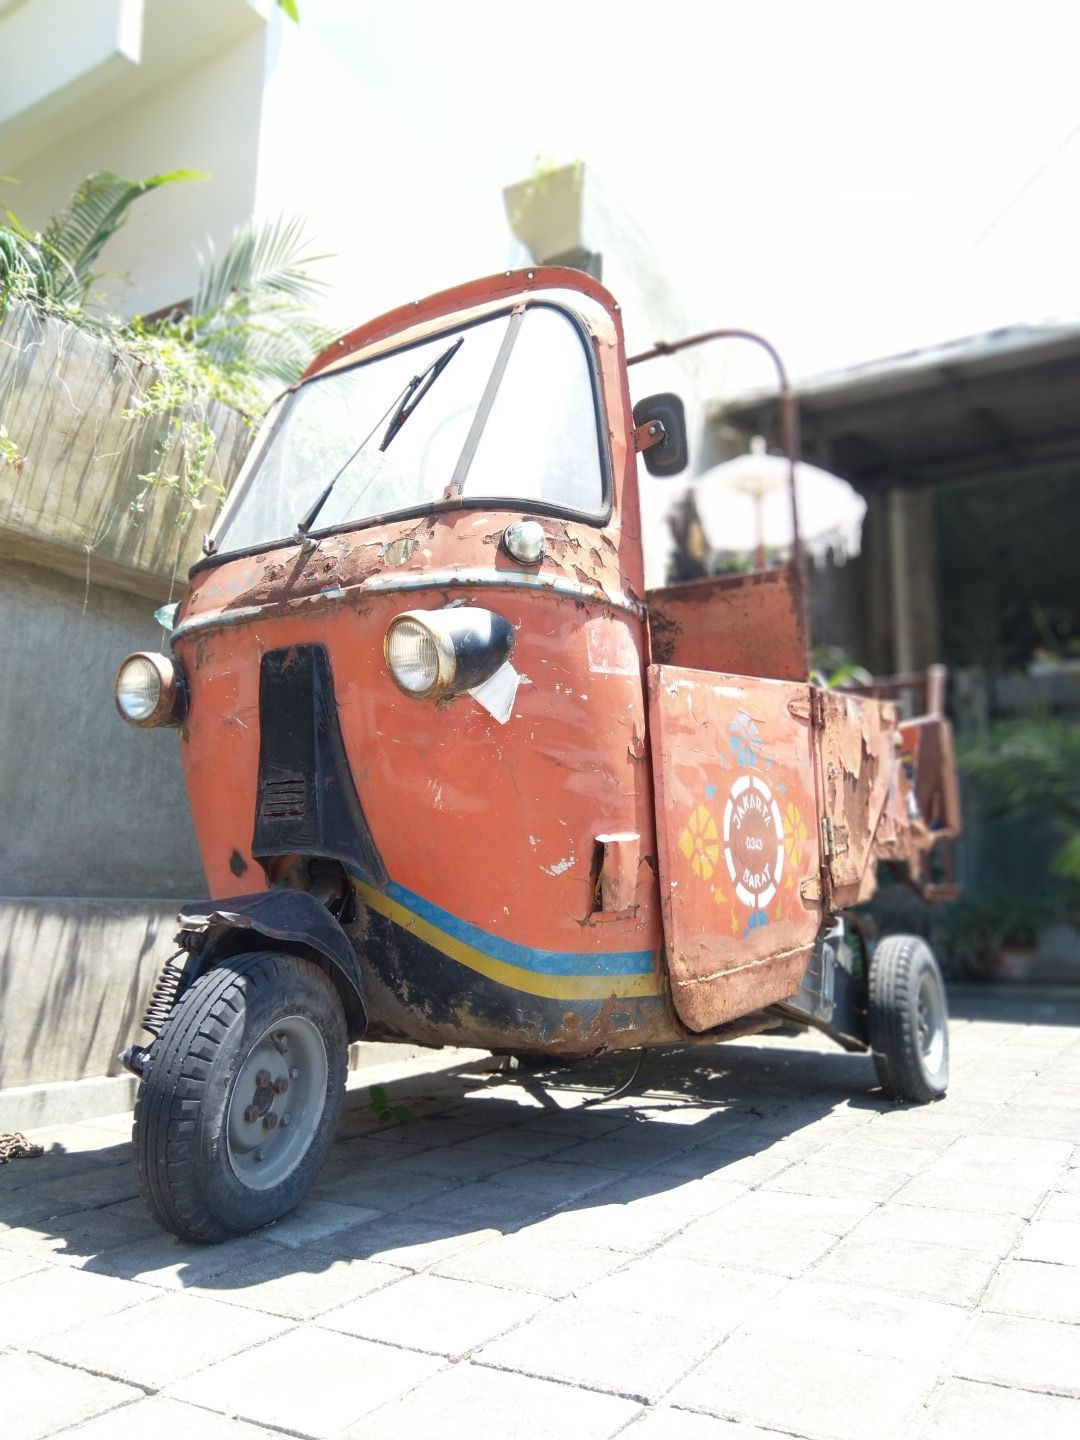 Republic of Soap - rusted bajaj